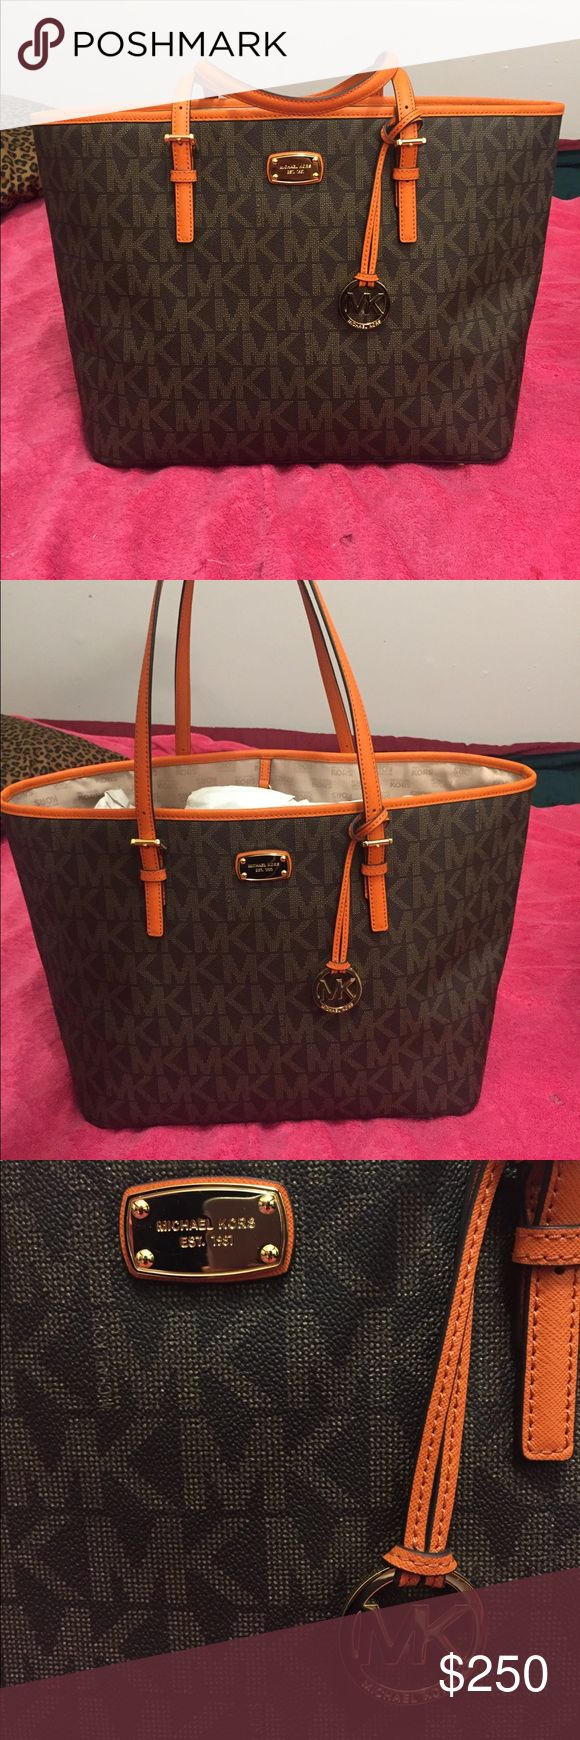 Michael Kors Jet Set Travel Tote This is the large bag. Michael Kors Bags